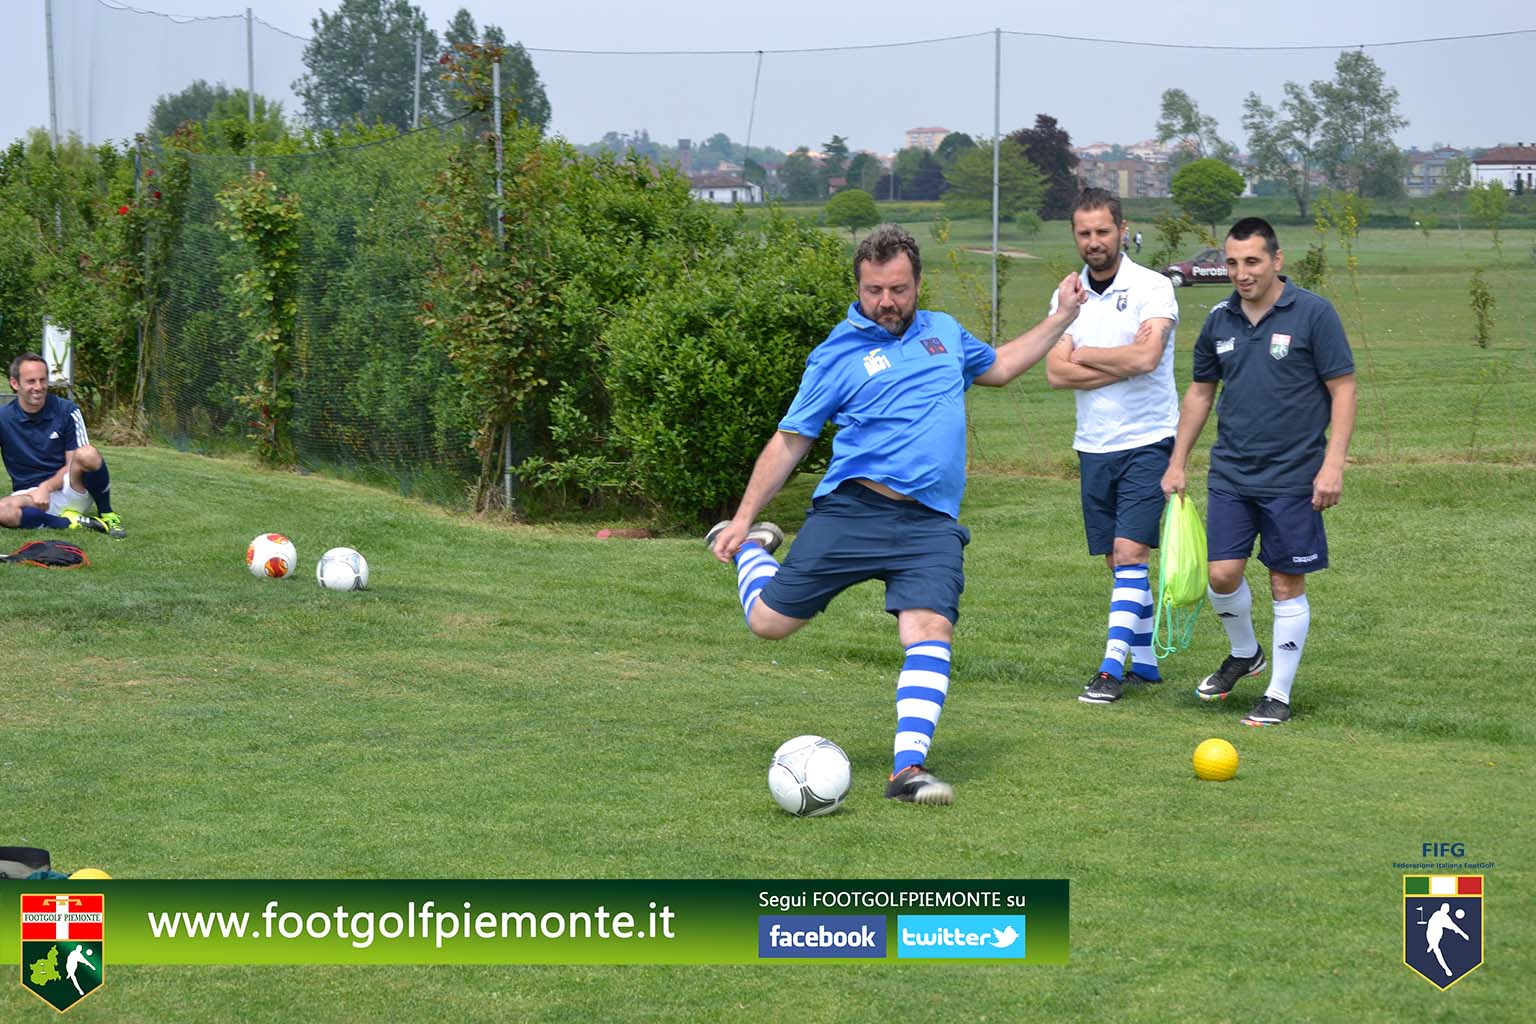 FOTO 9 Regions' Cup Footgolf Piemonte 2016 Golf Città di Asti (At) 30apr16-87